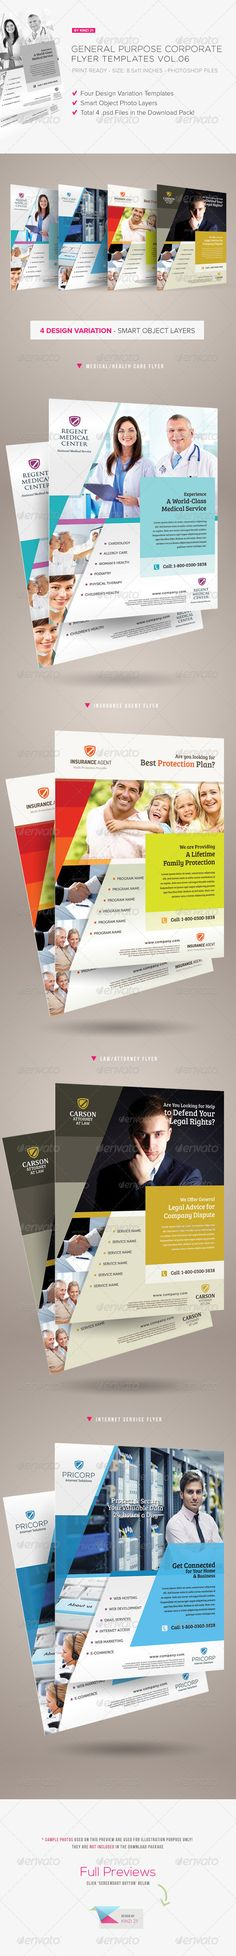 Buy General Purpose Corporate Flyer by on GraphicRiver. General Purpose Corporate Flyer This sixth volume of corporate flyer is designed in clean, modern, professiona. Corporate Style, Corporate Flyer, Business Company, Business Flyer, Editorial, Medical Brochure, Photo Layers, Internet Providers, Marketing Flyers